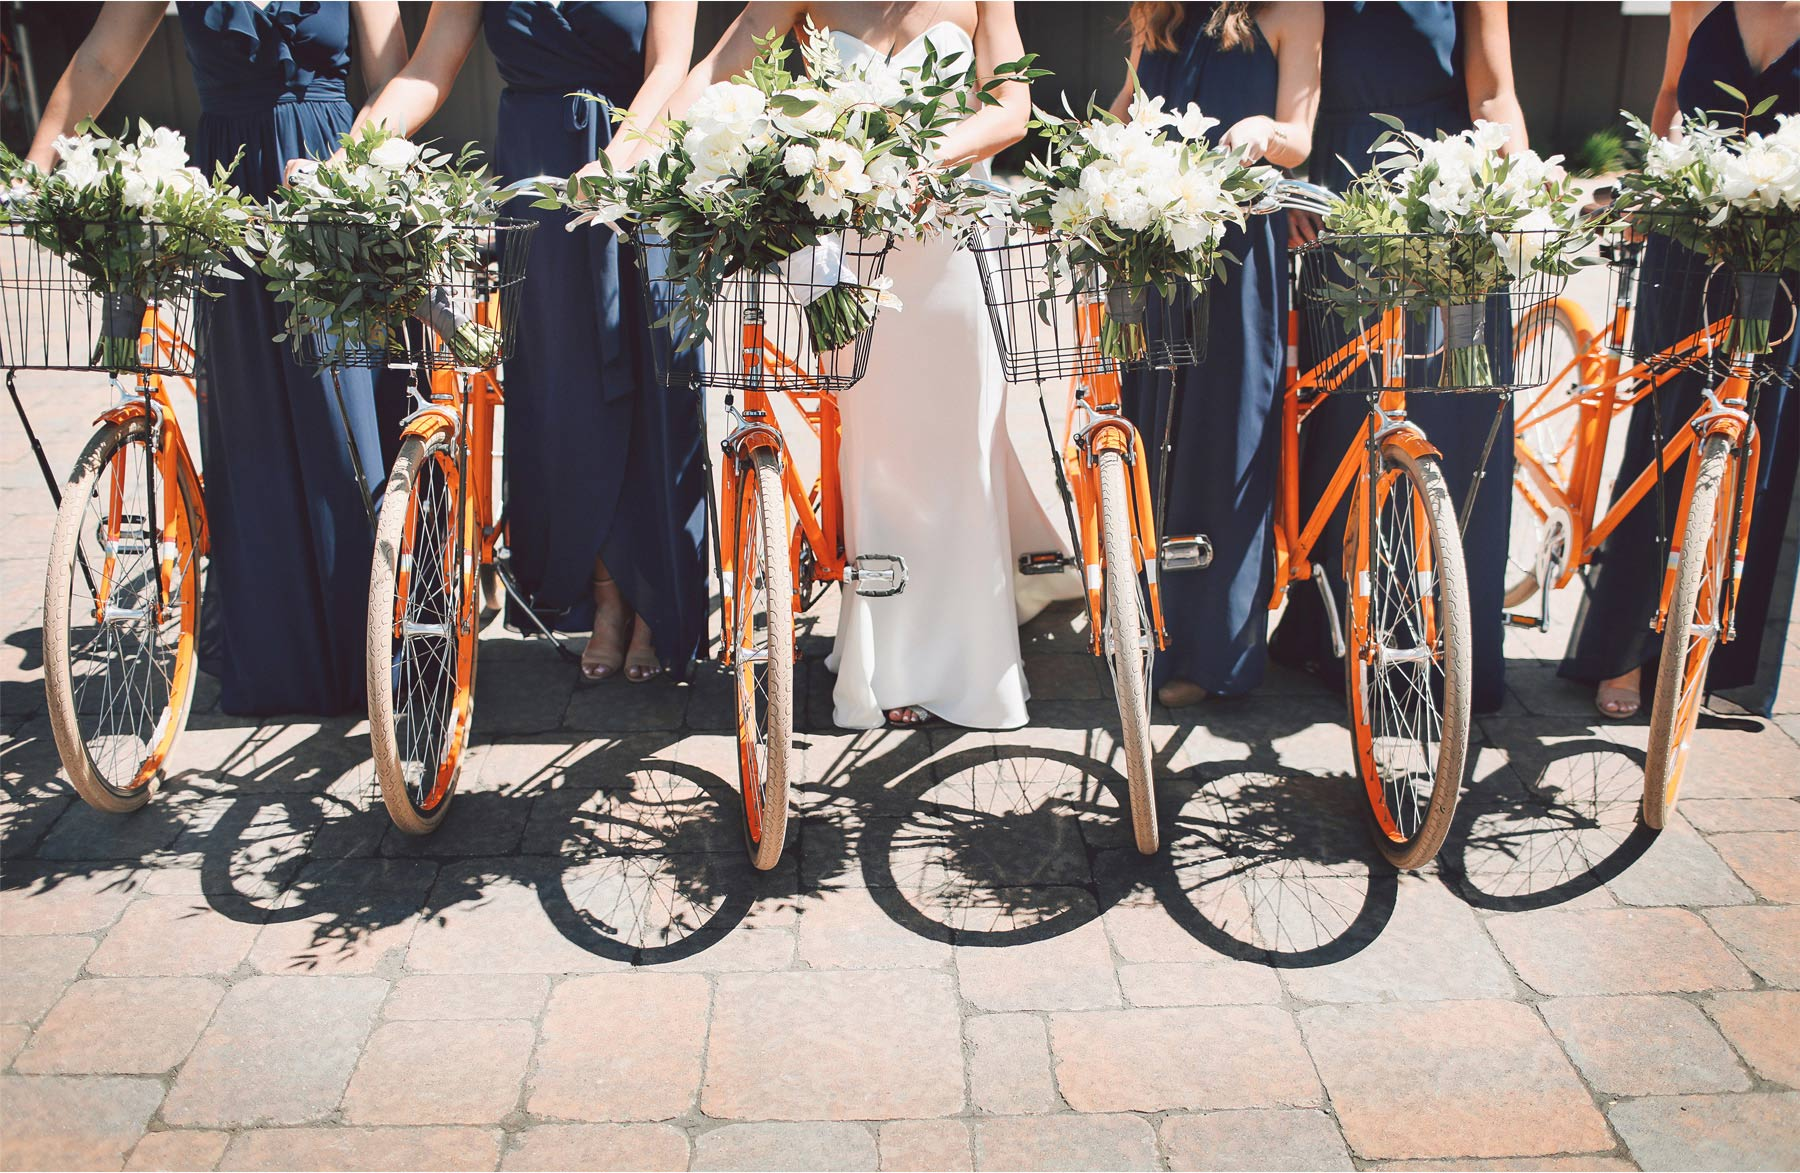 10-Napa-California-Wedding-Photographer-by-Andrew-Vick-Photography-Spring-Destination-Carneros-Resort-and-Spa-Bride-Bridesmaids-Bikes-Bicycles-Flowers-Vintage-Alex-and-Roger.jpg